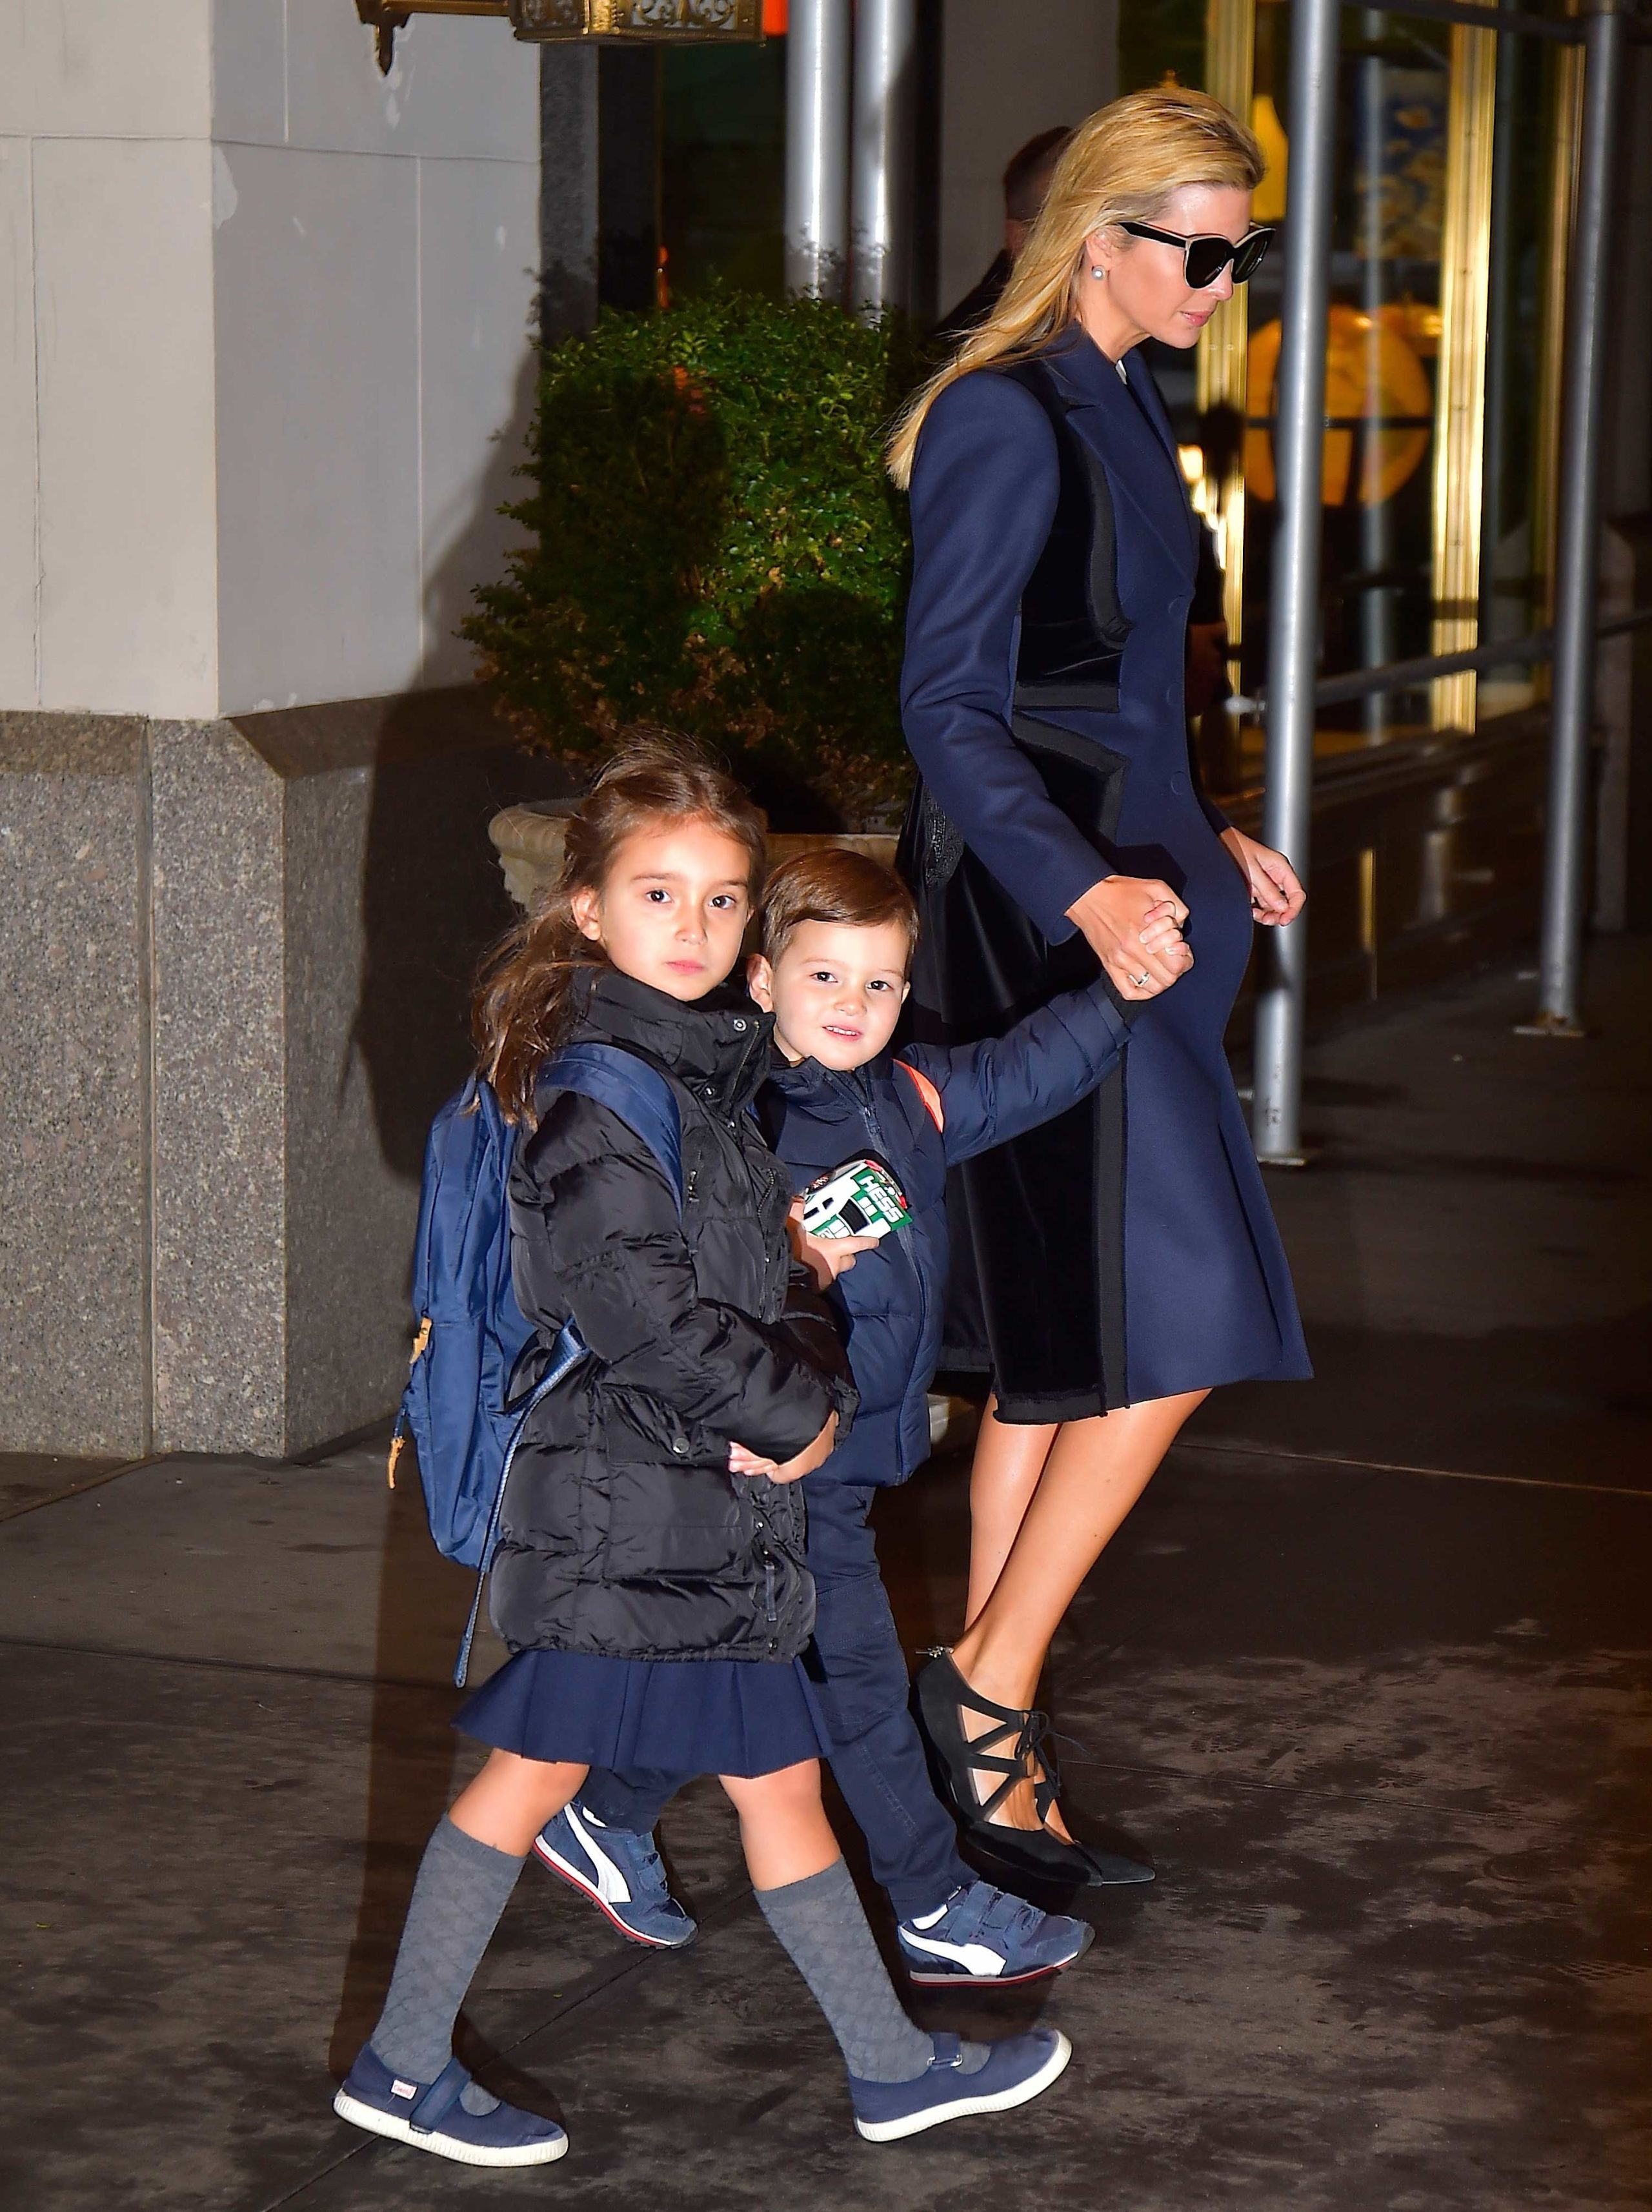 Ivanka Trump walks with her two oldest children, Arabella and Joseph, in  New York City last week.